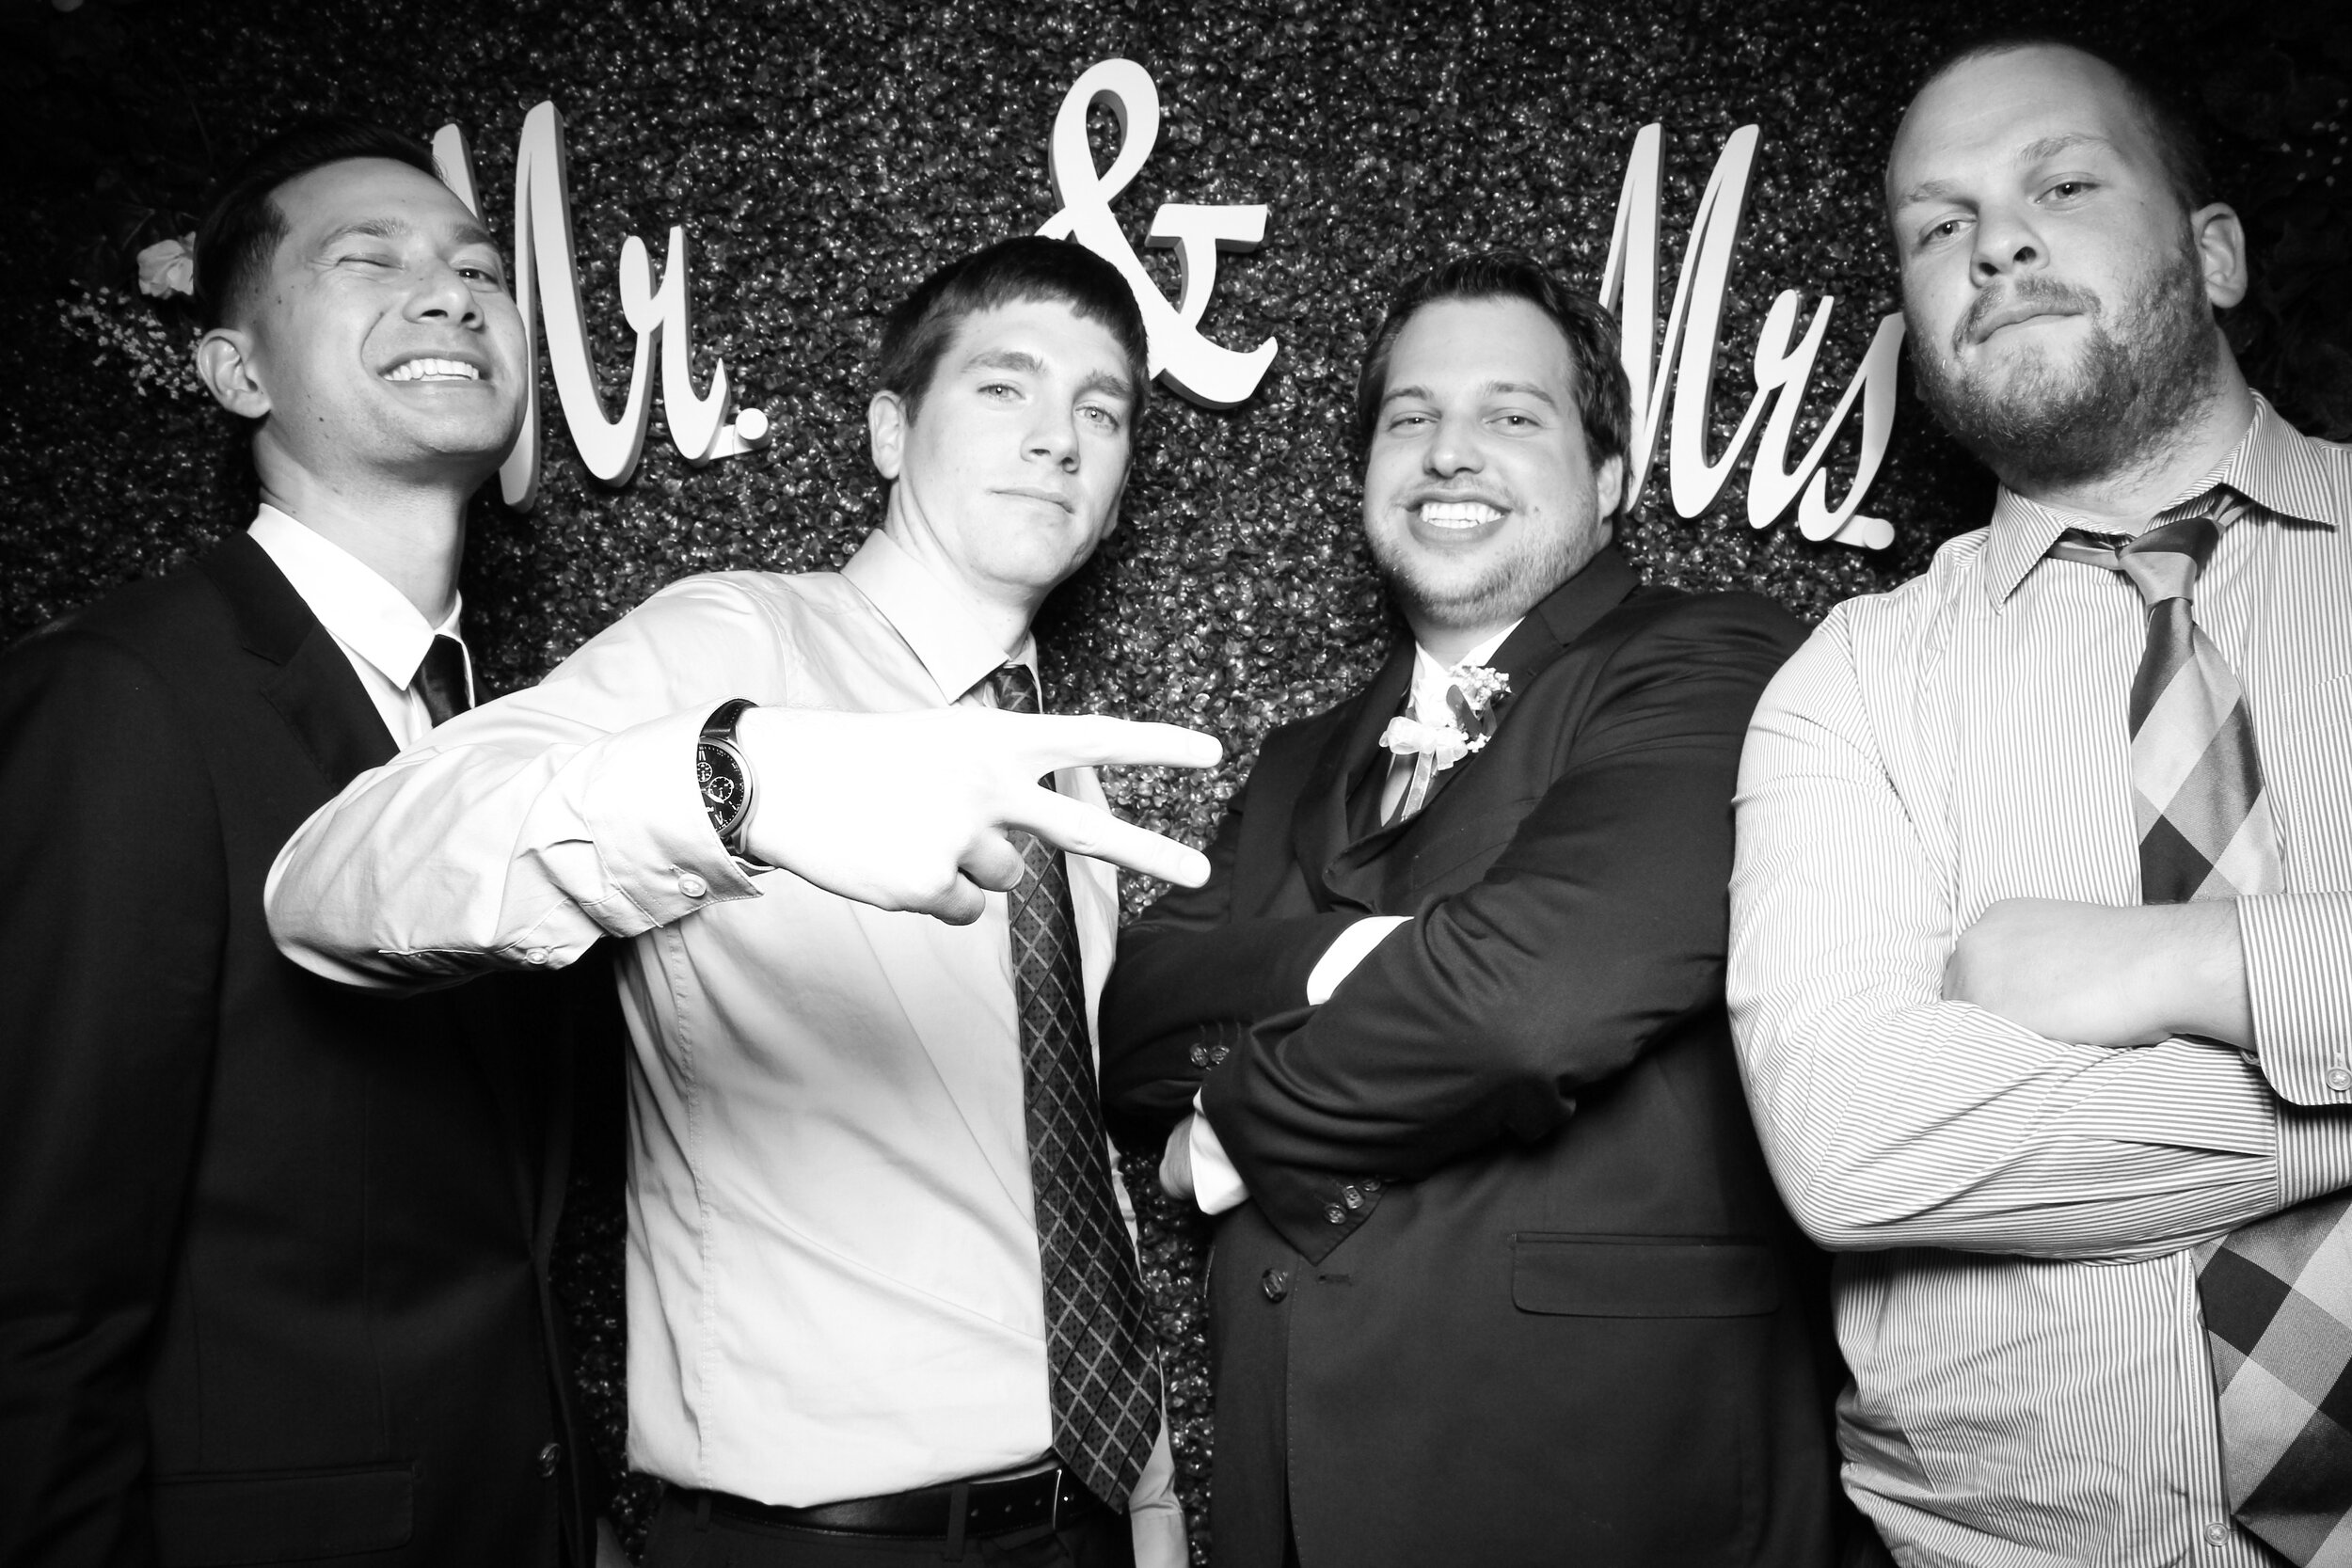 Green_Hedge_Ivy_Wall_Backdrop_Photo_Booth_Rental_Chicago_15.jpg